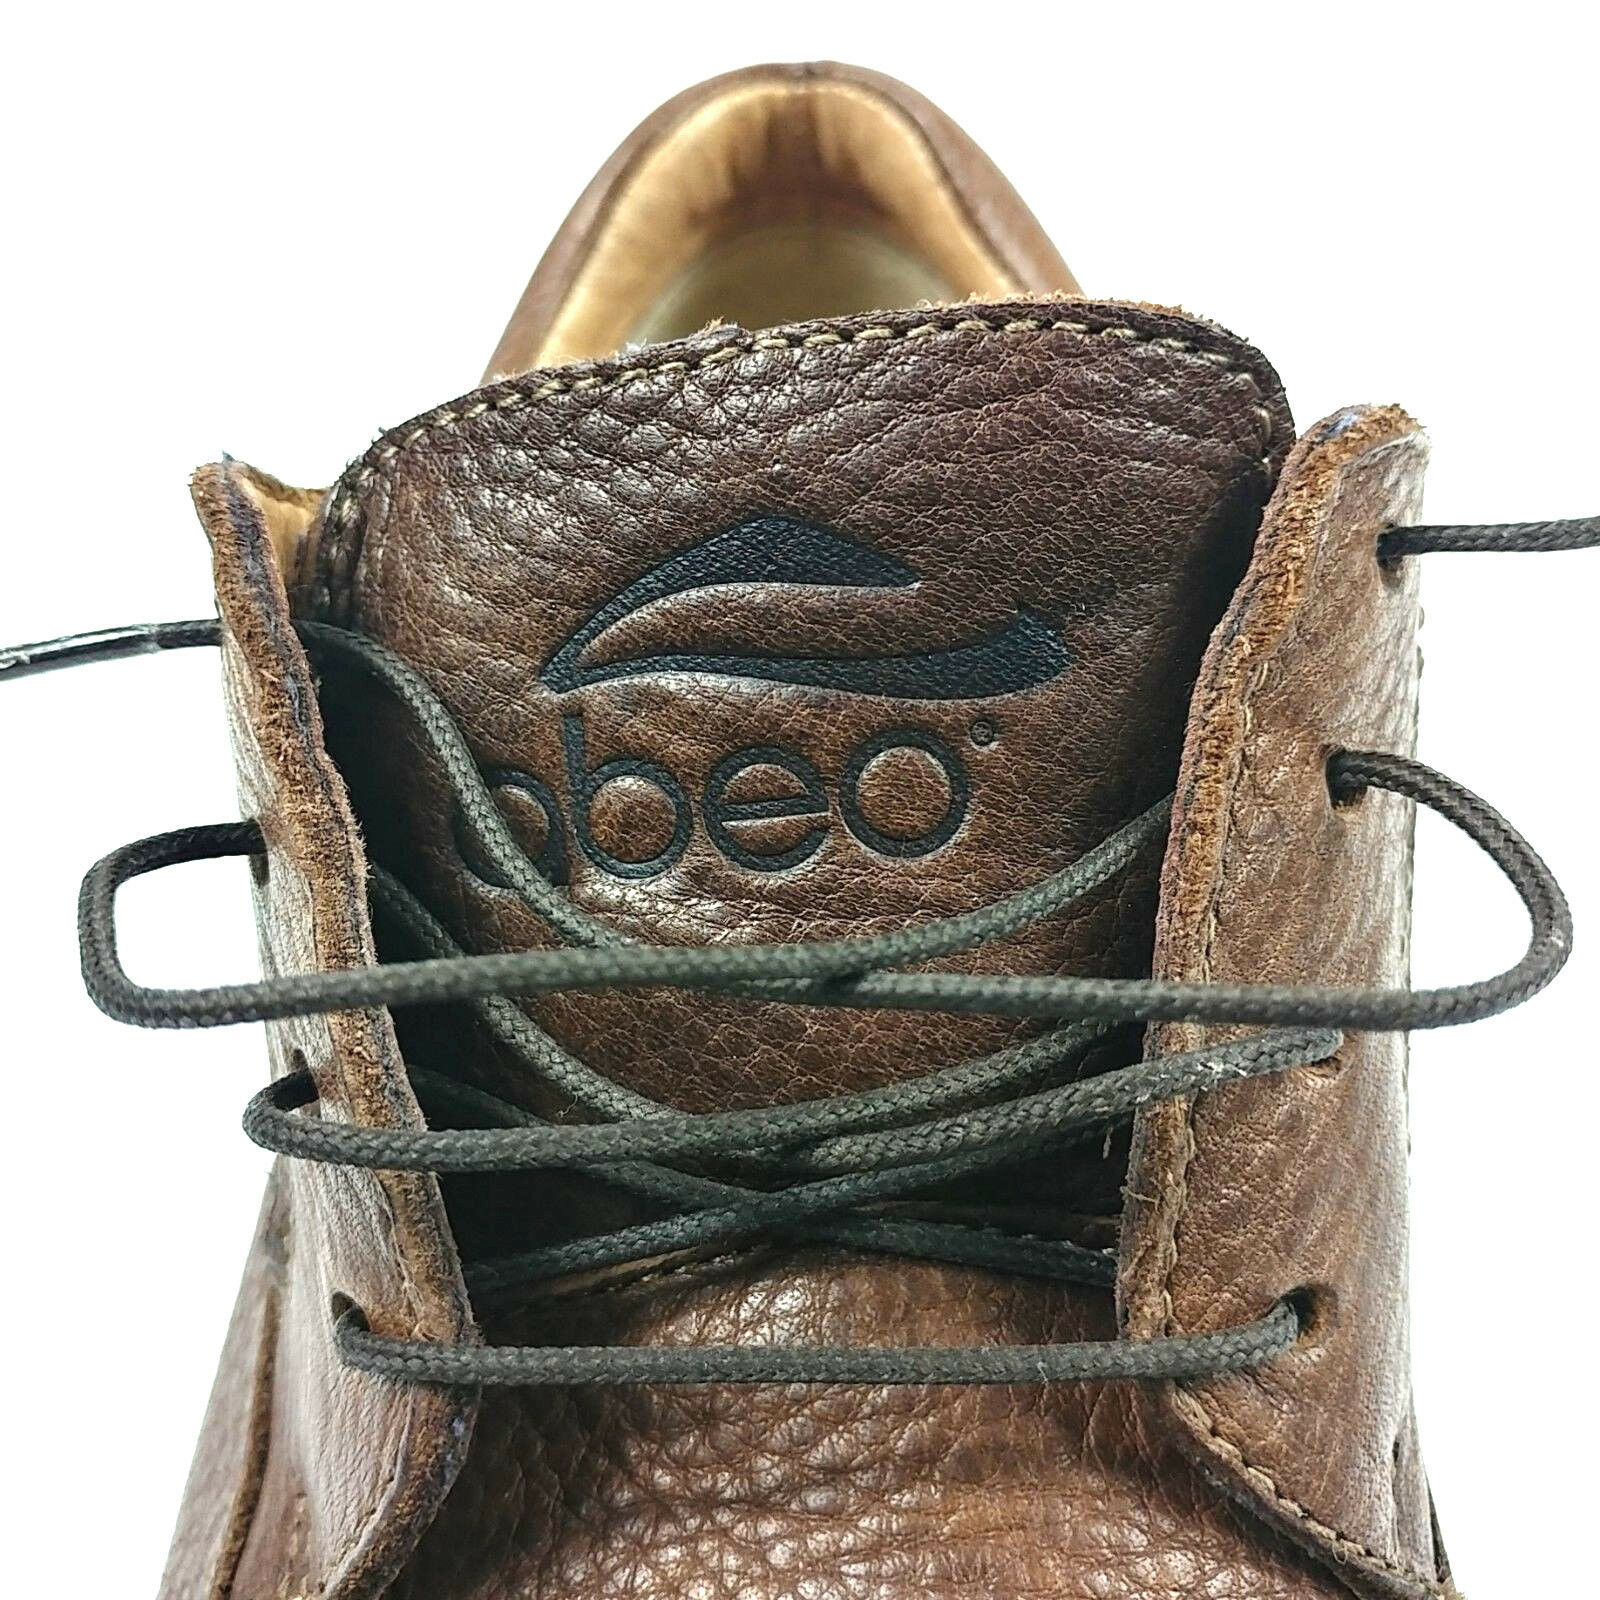 ABEO SMART SMART SMART SYSTEMS-3820 TIE damen lace Up Moc Toe braun Leather schuhe Größe 7.5M 979491